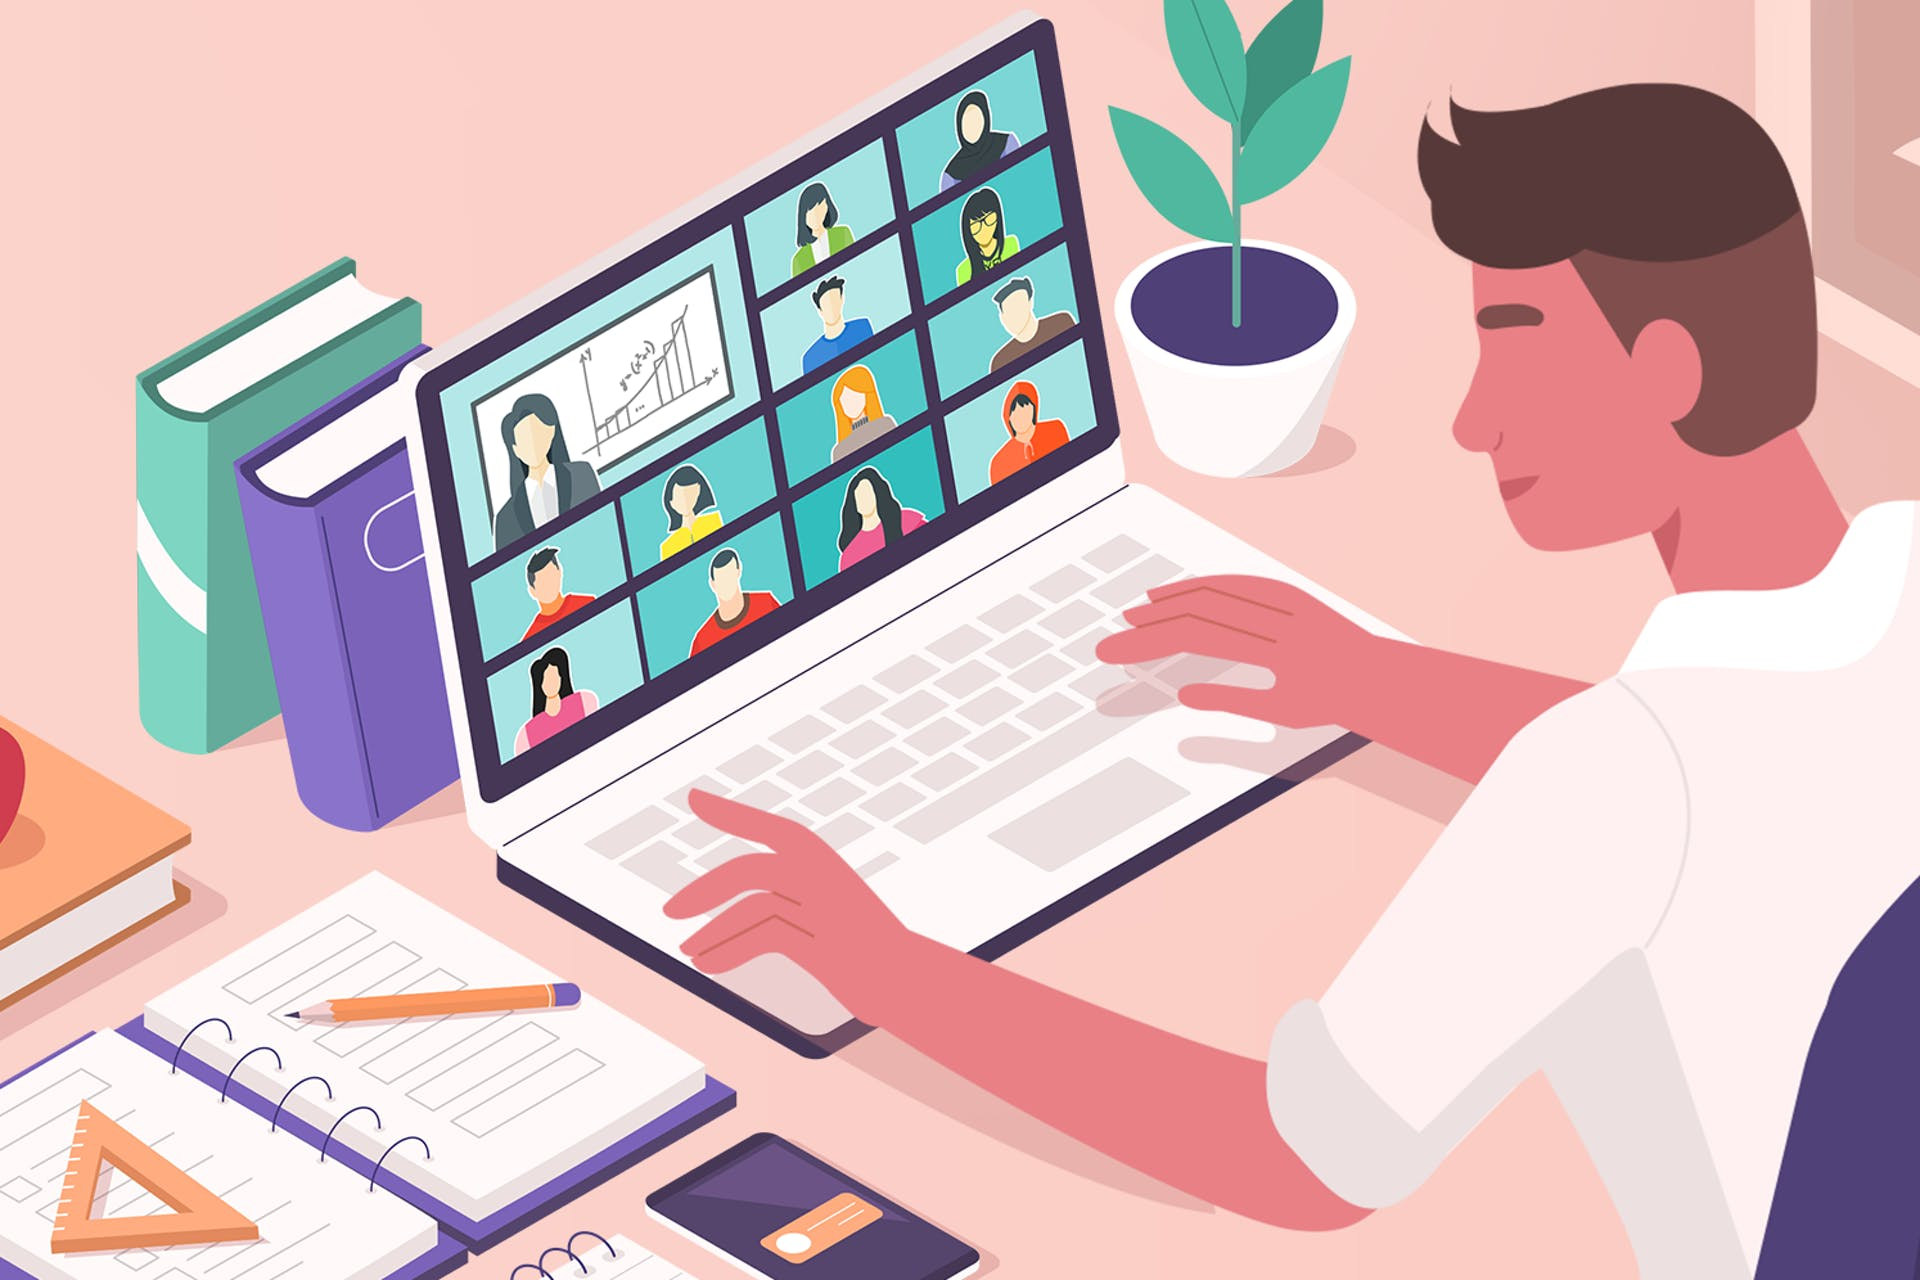 Illustration of a man in a virtual meeting